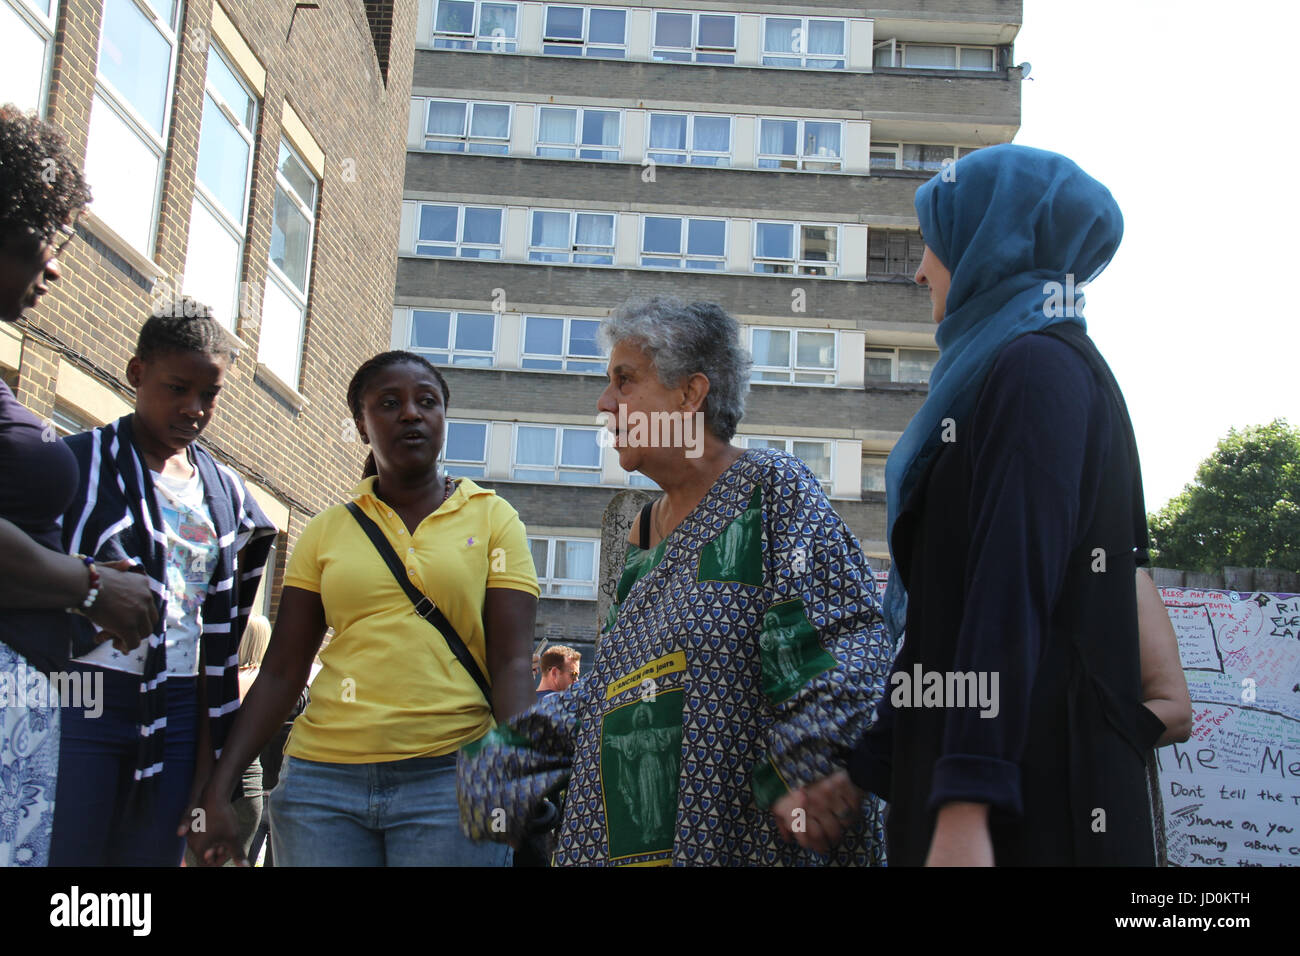 London, UK. 16th June 2017. A group of women join hand in song by a Grenfell Memorial wall. At least 30 people have - Stock Image